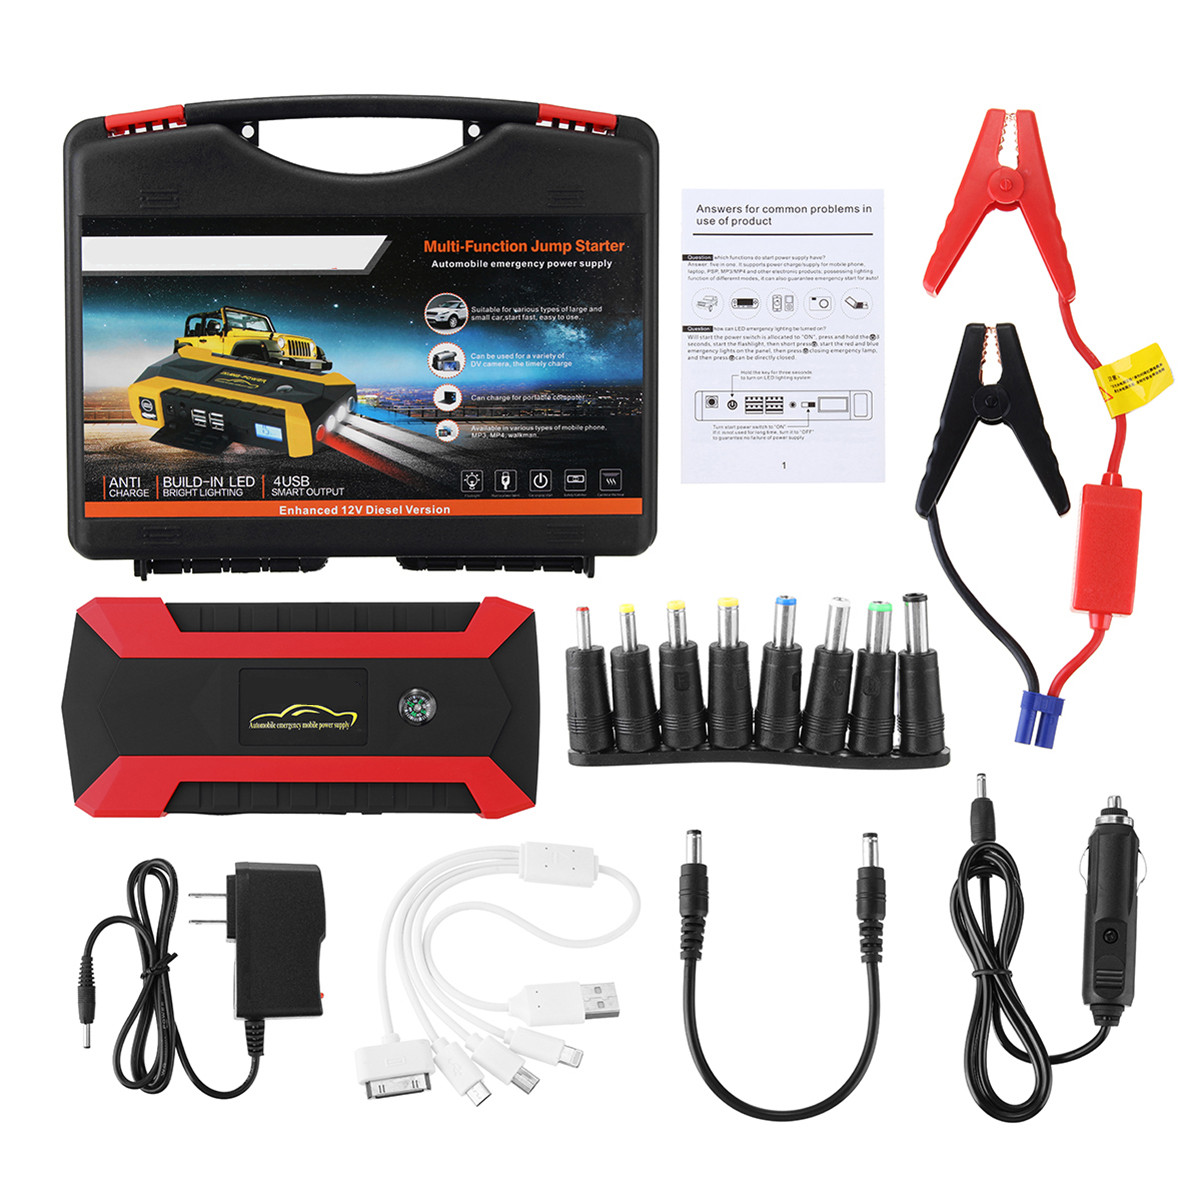 High Quality 12000mAh 12V 4 USB Car Jump Starter Pack Booster Charger Battery Power Bank Kit стоимость